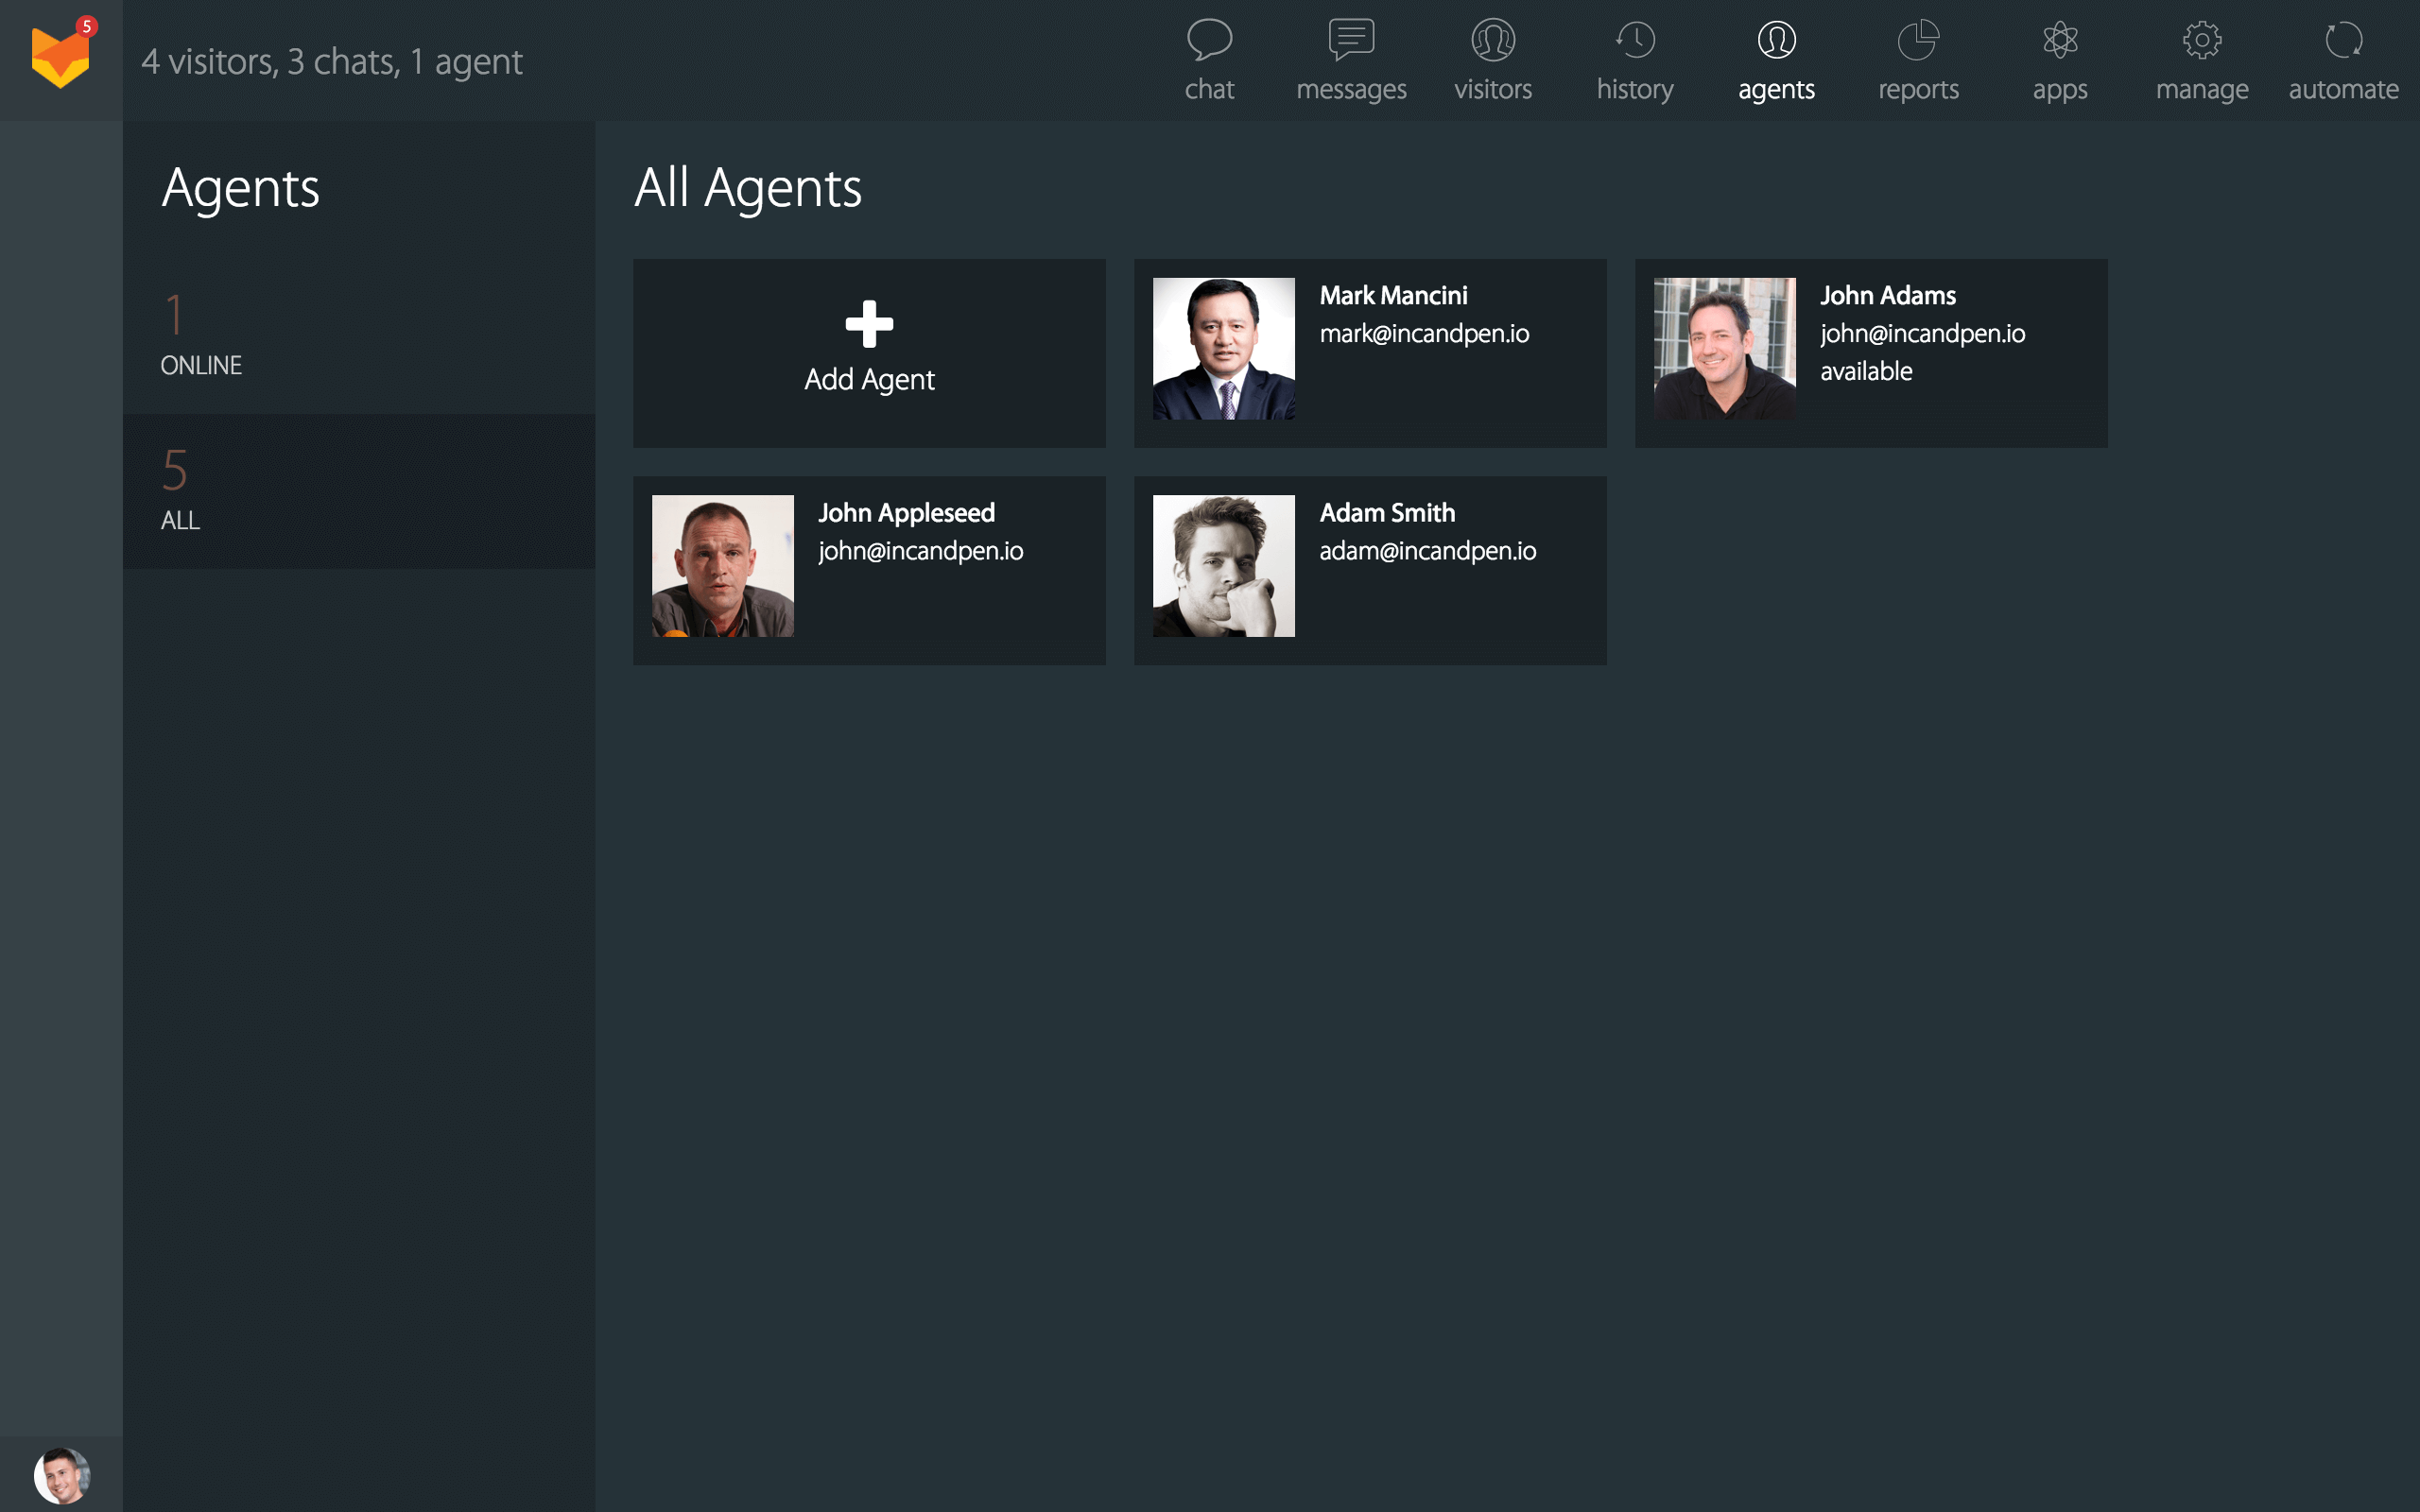 Manage agents from Gsuite